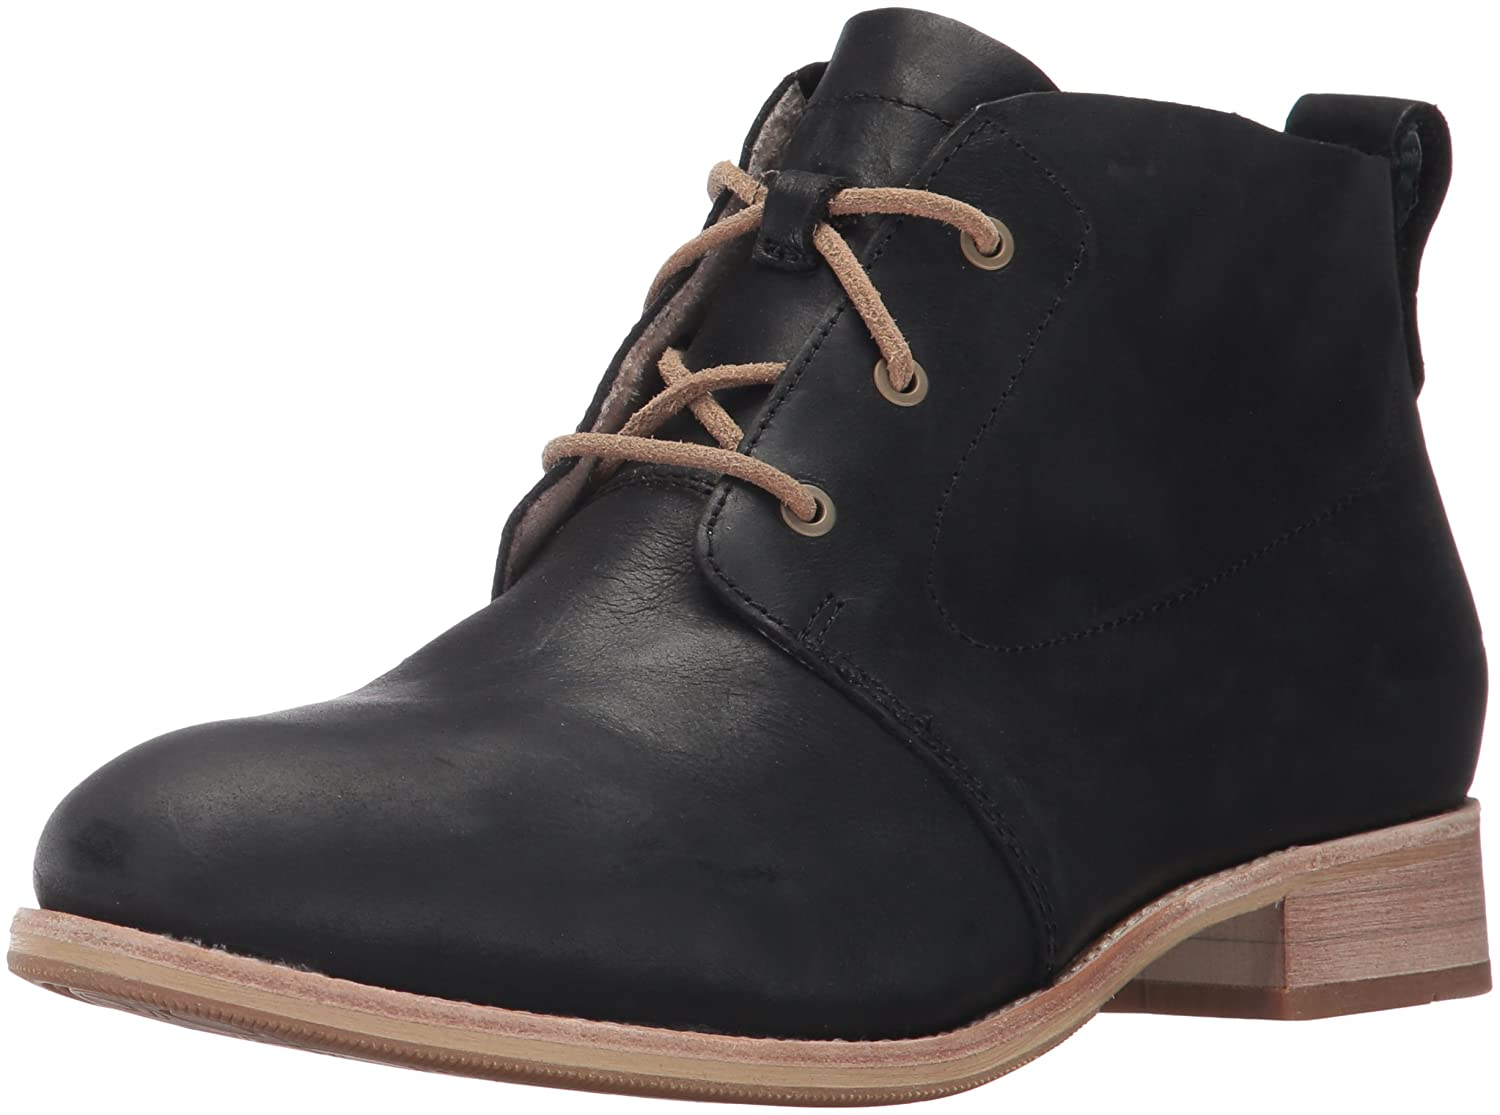 Caterpillar Women's Hester 3 Eyelet Leather Chukka Bootie Ankle Boot B01N0QJRSW 8.5 B(M) US|Black